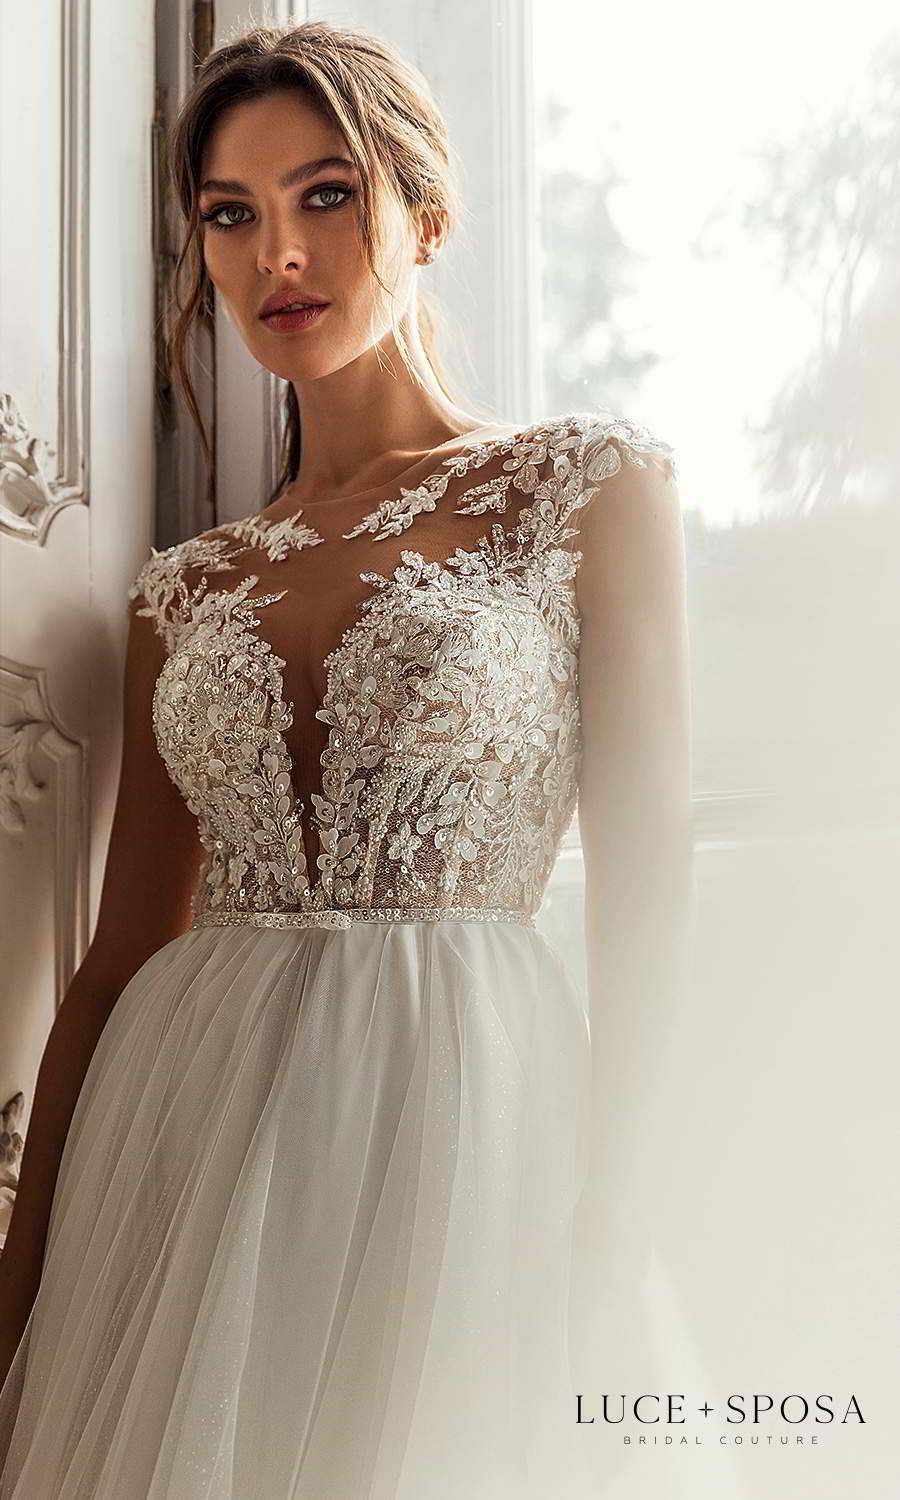 luce sposa 2021 shades of couture bridal cap sleeves plunging sweetheart neckline heavily embellished bodice clean skirt a line ball gown wedding dress chapel train (genesis) zv